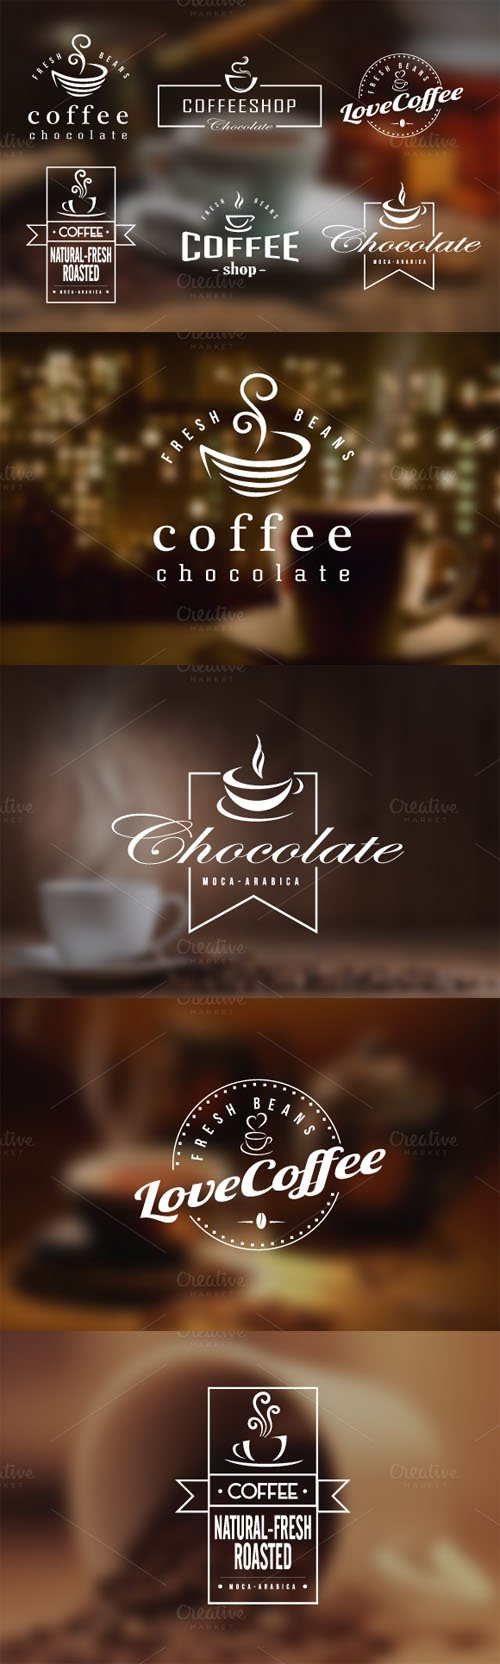 Coffee Retro Badges, Labels & Logos - Creativemarket 47488